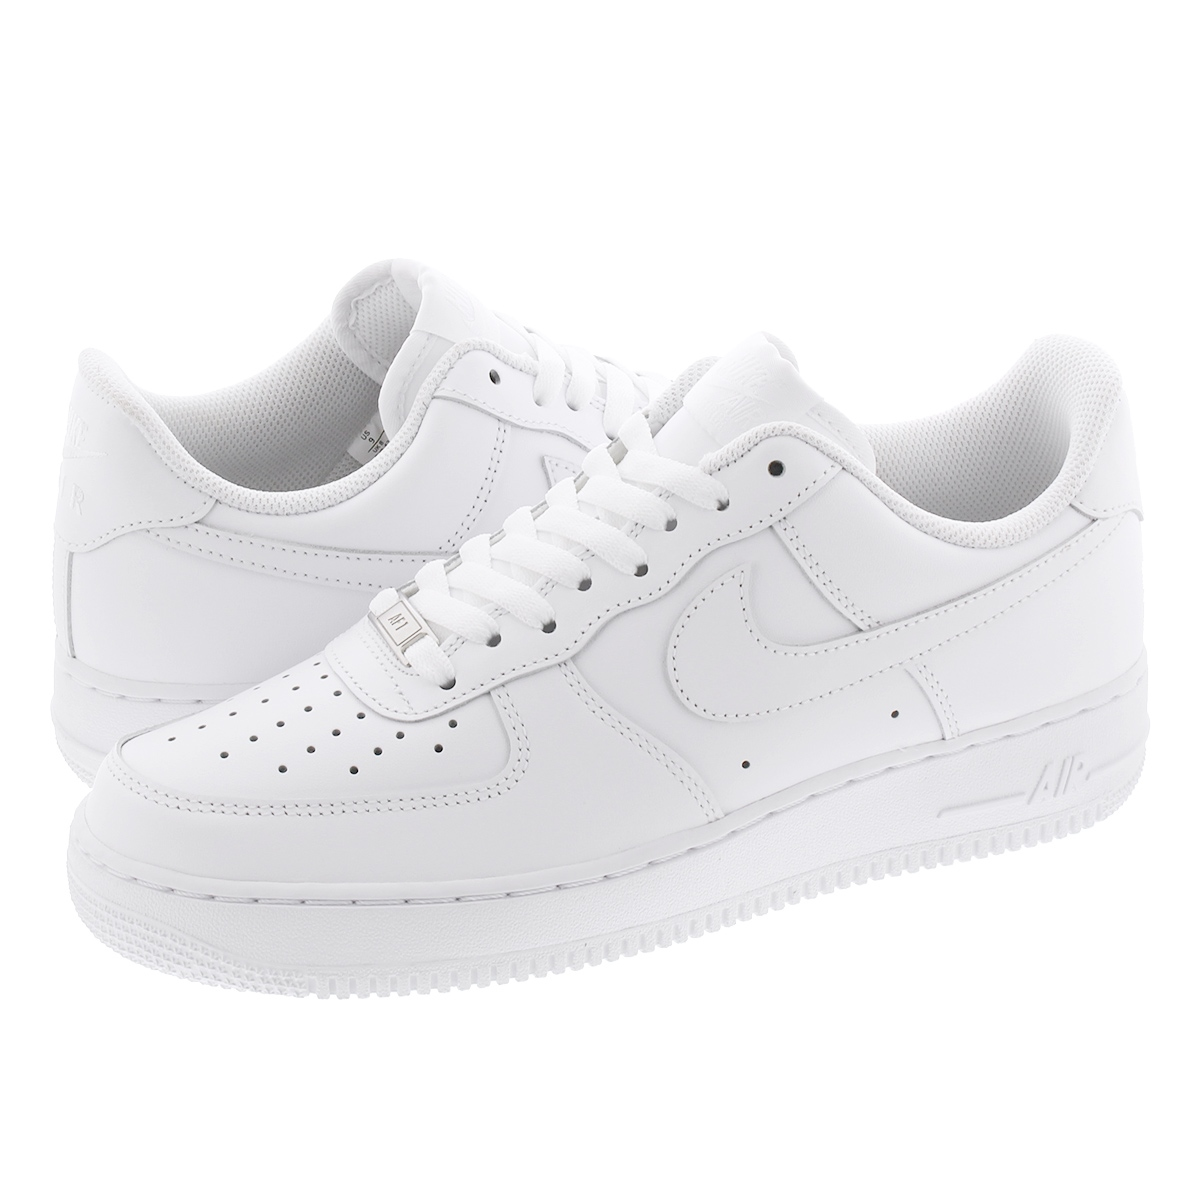 NIKE AIR FORCE 1 LOW 07 WHITE